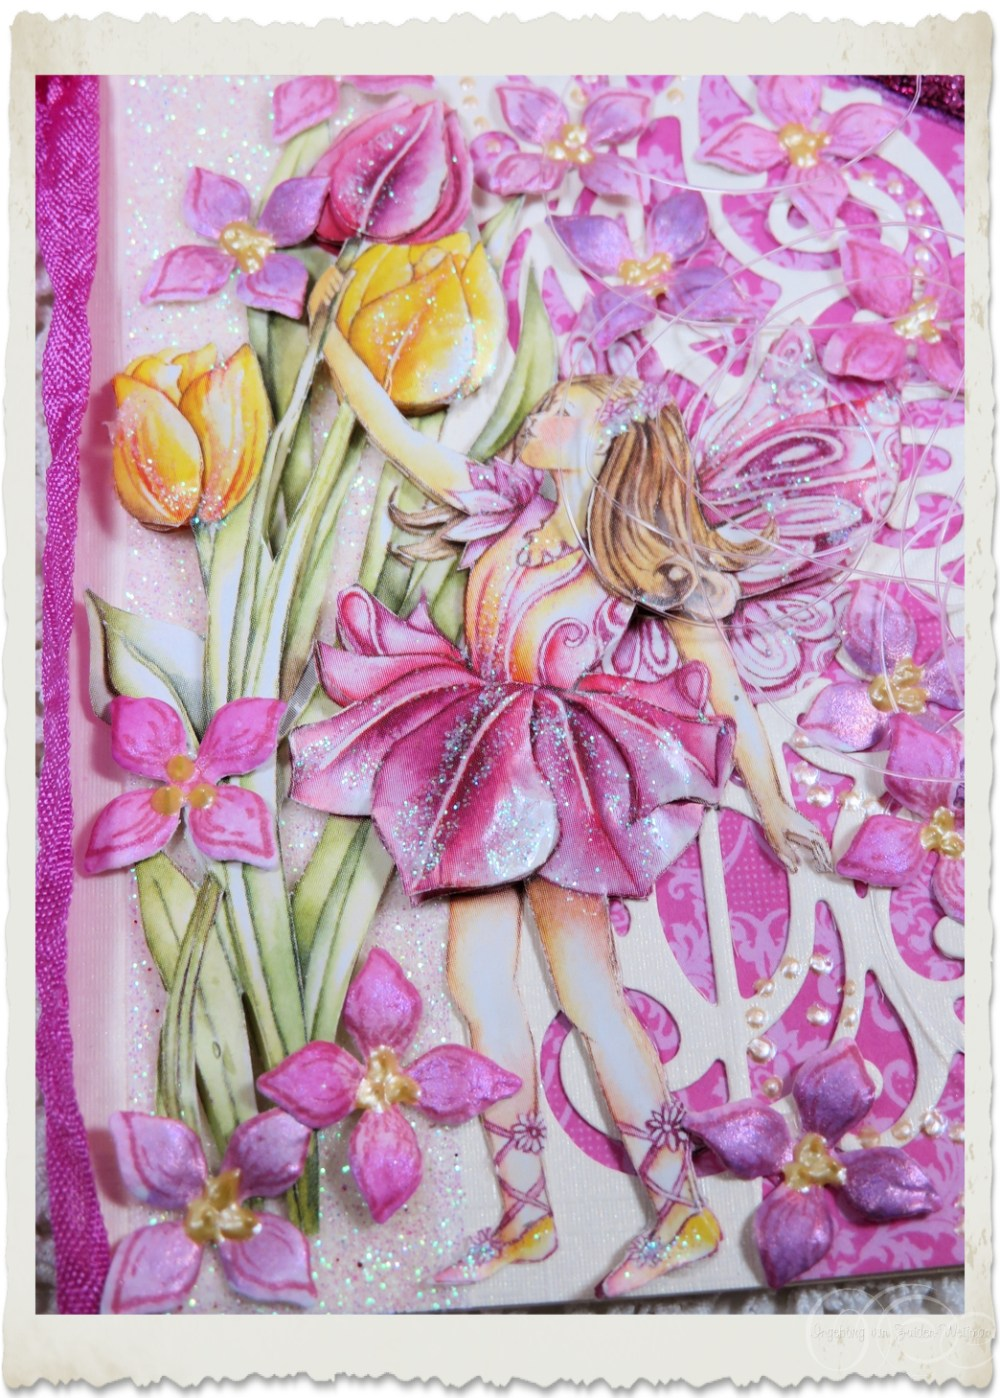 Details of handmade flower fairy card with Heartfelt Creations lilac flowers and tulips by Ingeborg van Zuiden